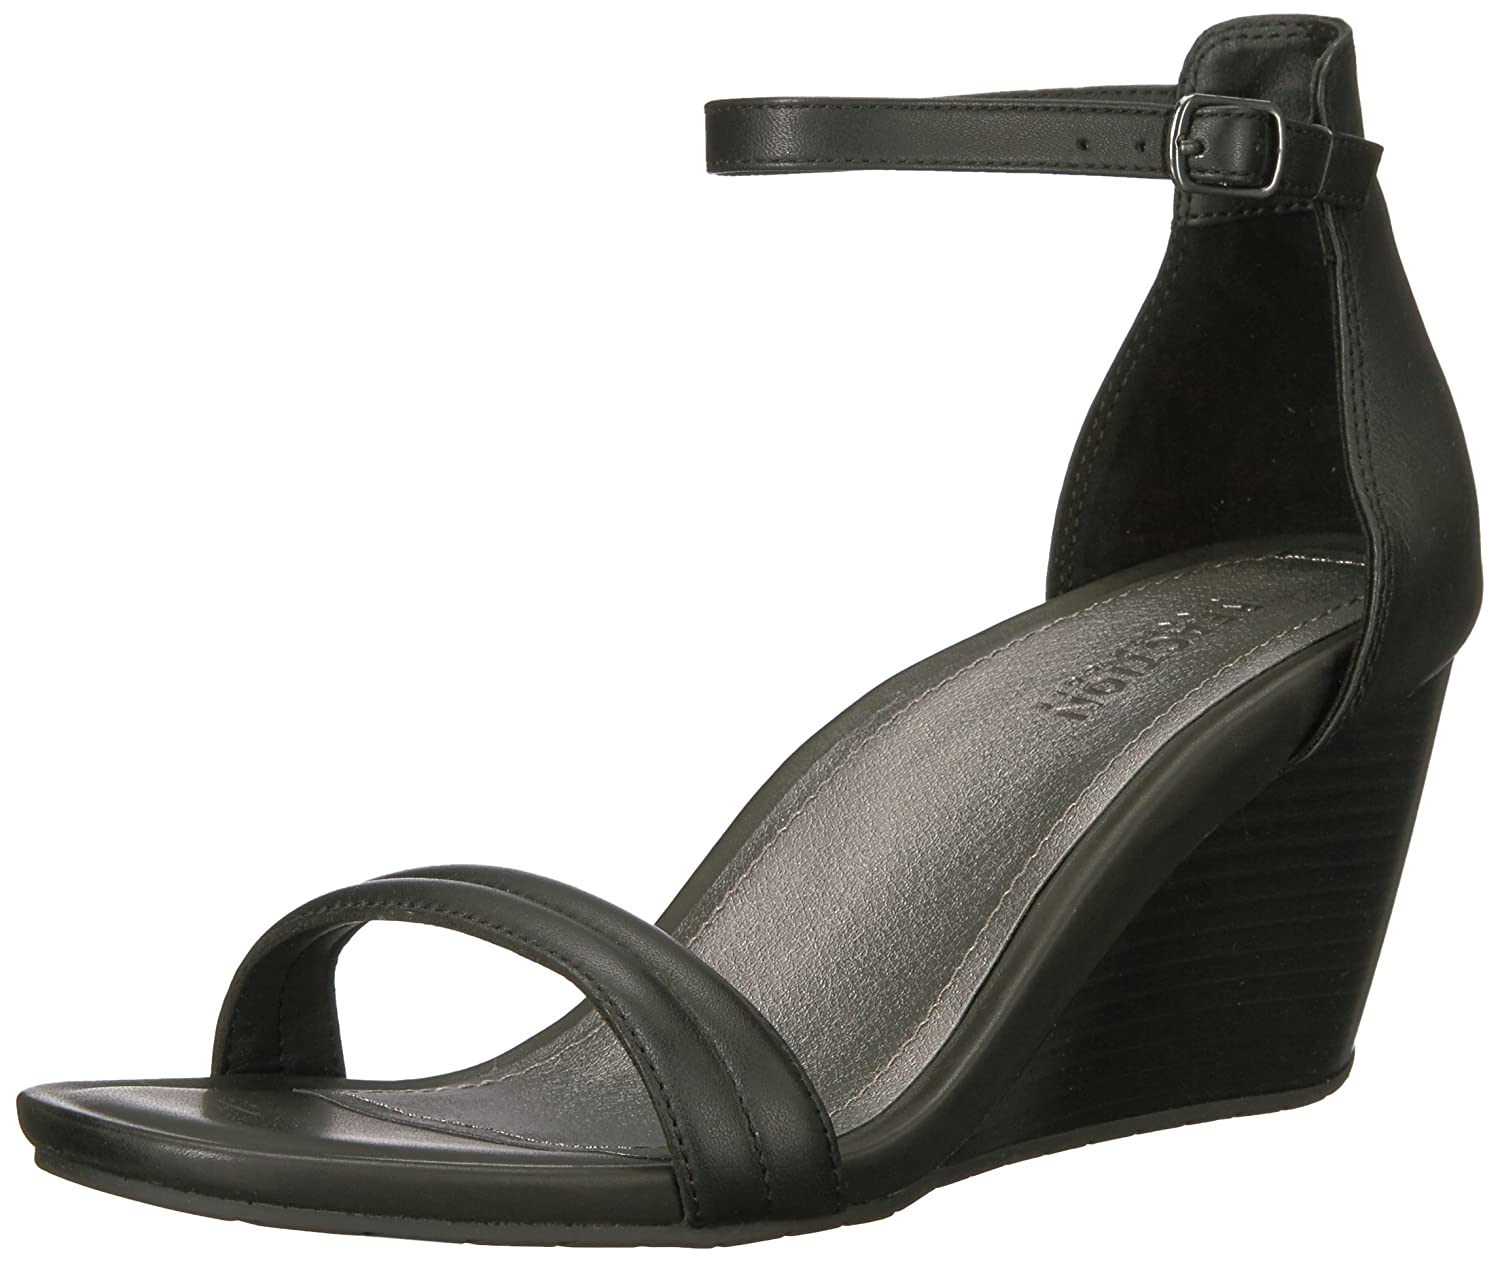 Kenneth Cole REACTION Women's Padded Cake Icing Open Toe Padded Women's Straps Wedge Sandal B06W9LQ9QB 8 B(M) US|Black ff1f81